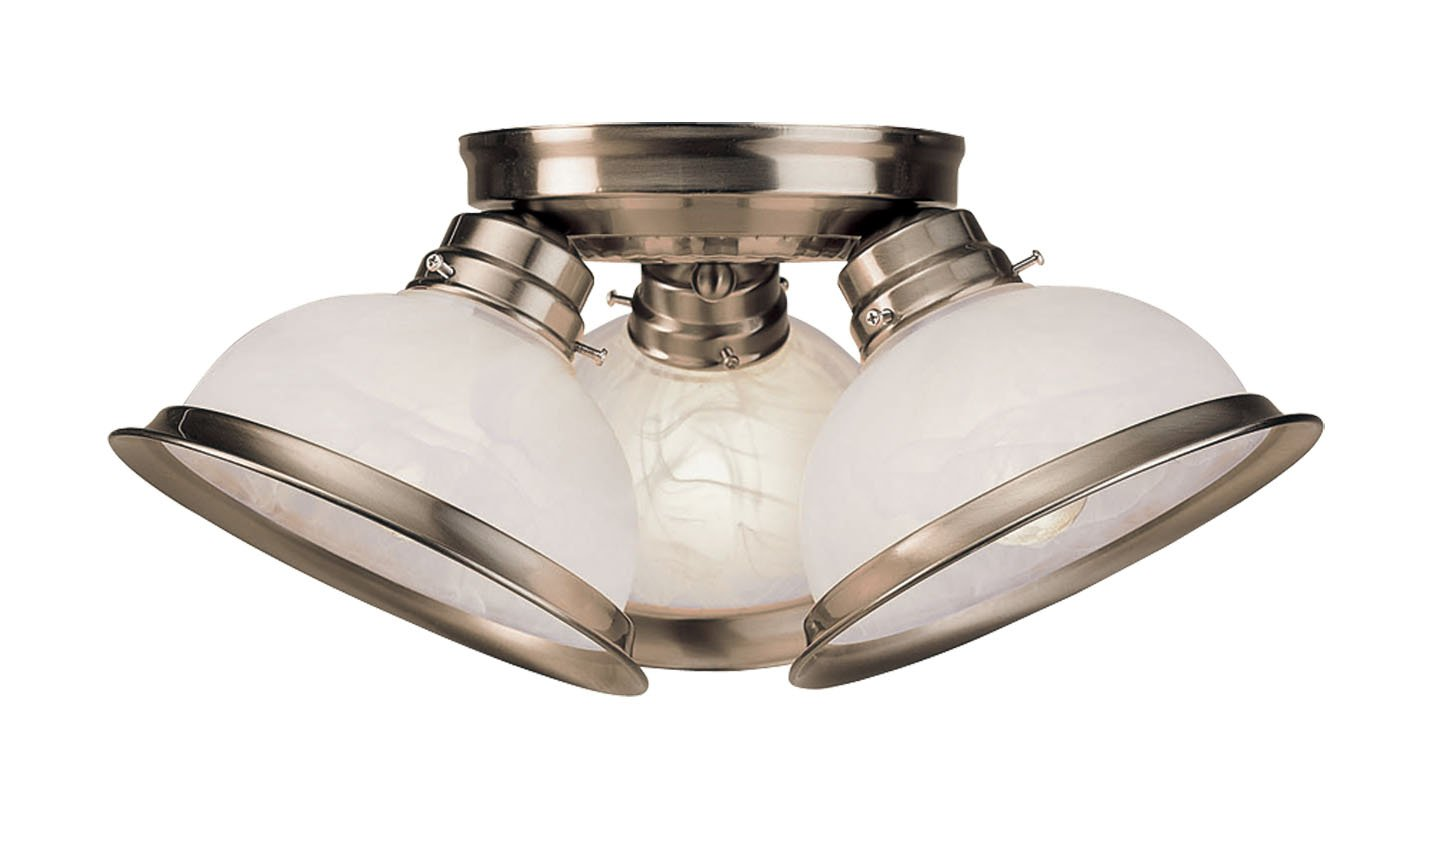 Livex lighting 8108 01 home basics 3 light antique brass flush mount livex lighting 8108 01 home basics 3 light antique brass flush mount with white alabaster glass close to ceiling light fixtures amazon arubaitofo Choice Image